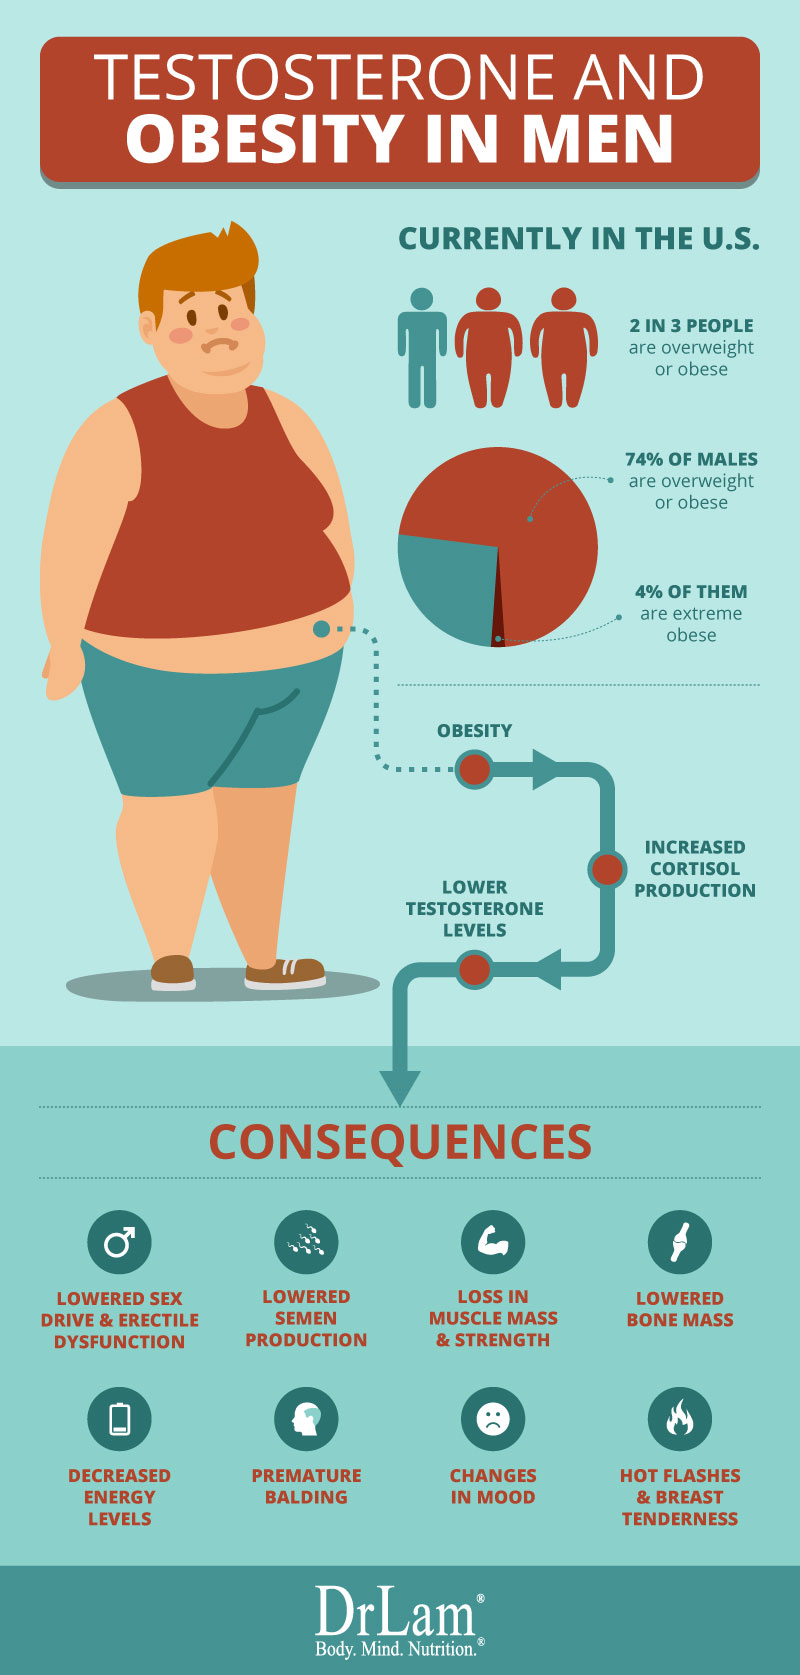 Check out this easy to understand infographic about the testosterone concerns in Obese men